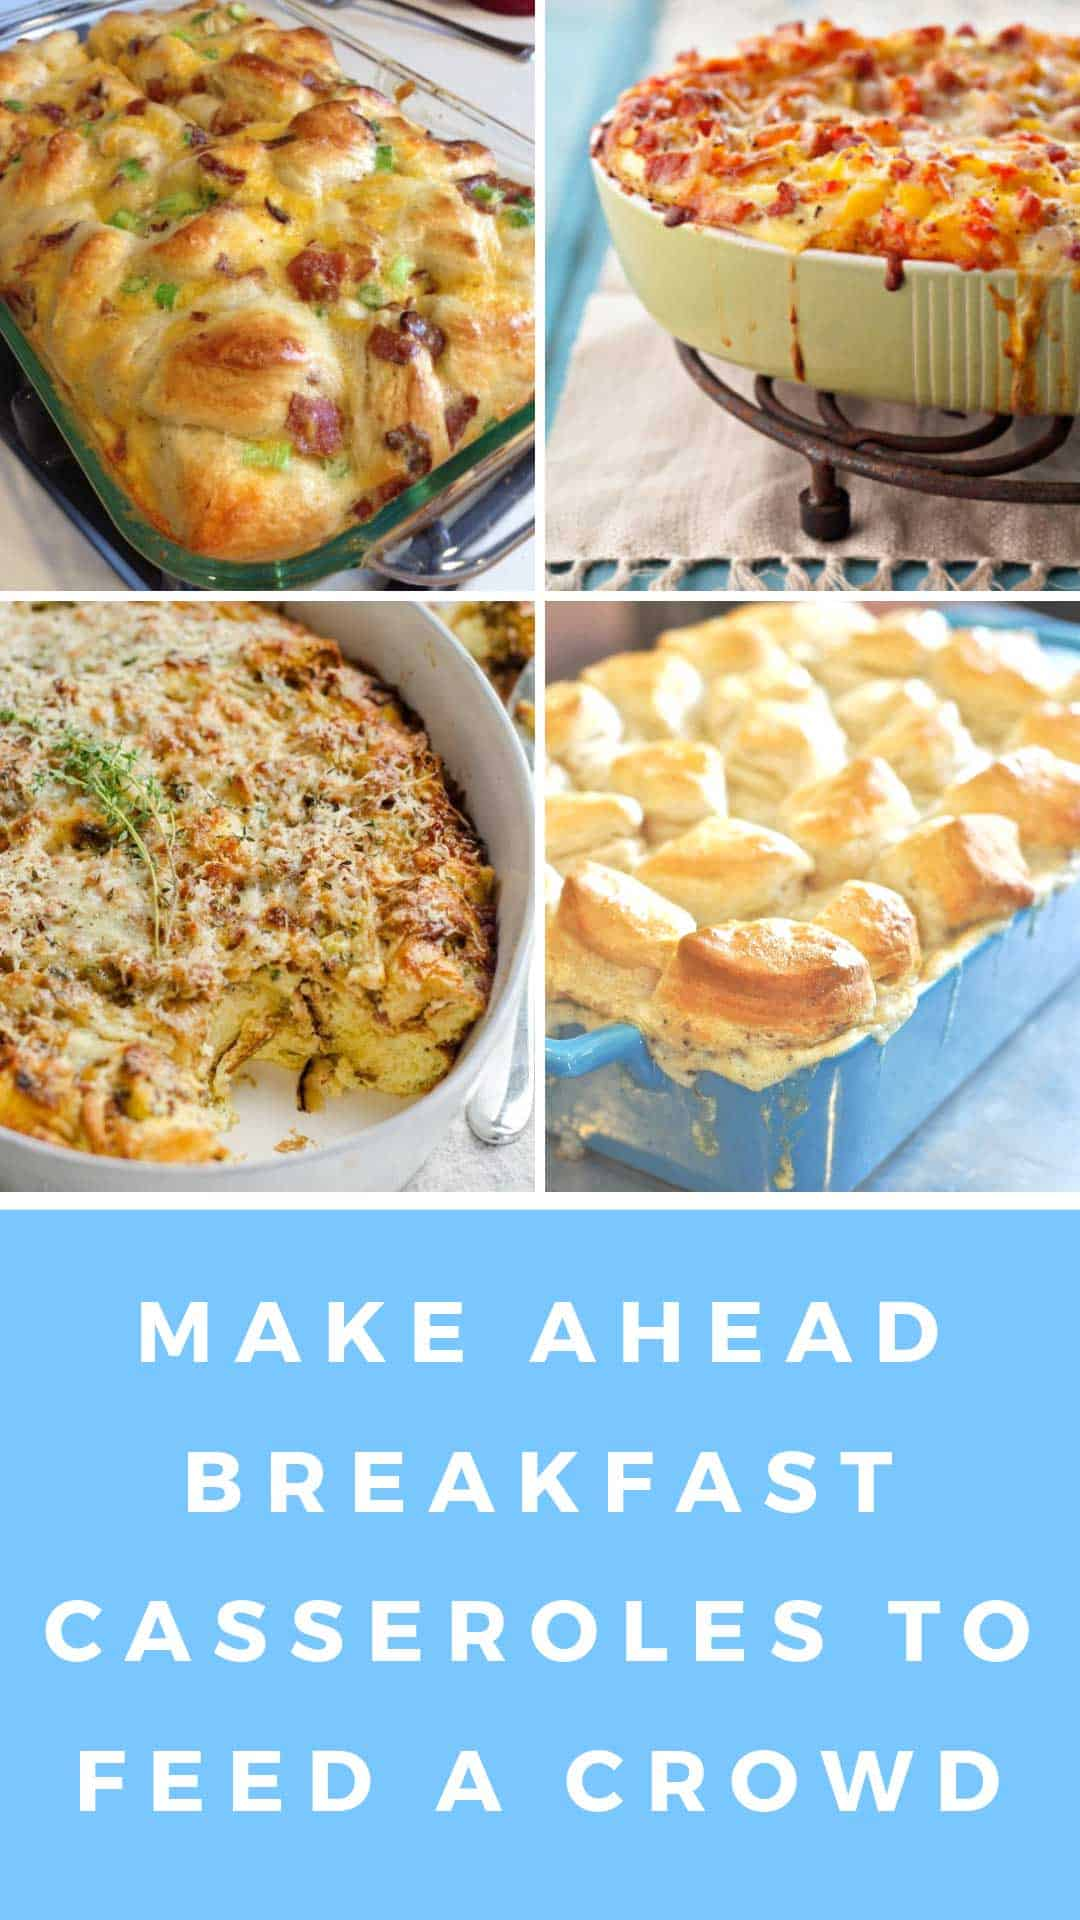 Looking for make ahead breakfast for a crowd? These breakfast casseroles are the answer! Taste great and freezer friendly too! #breakfast #mealplan #food #recipe